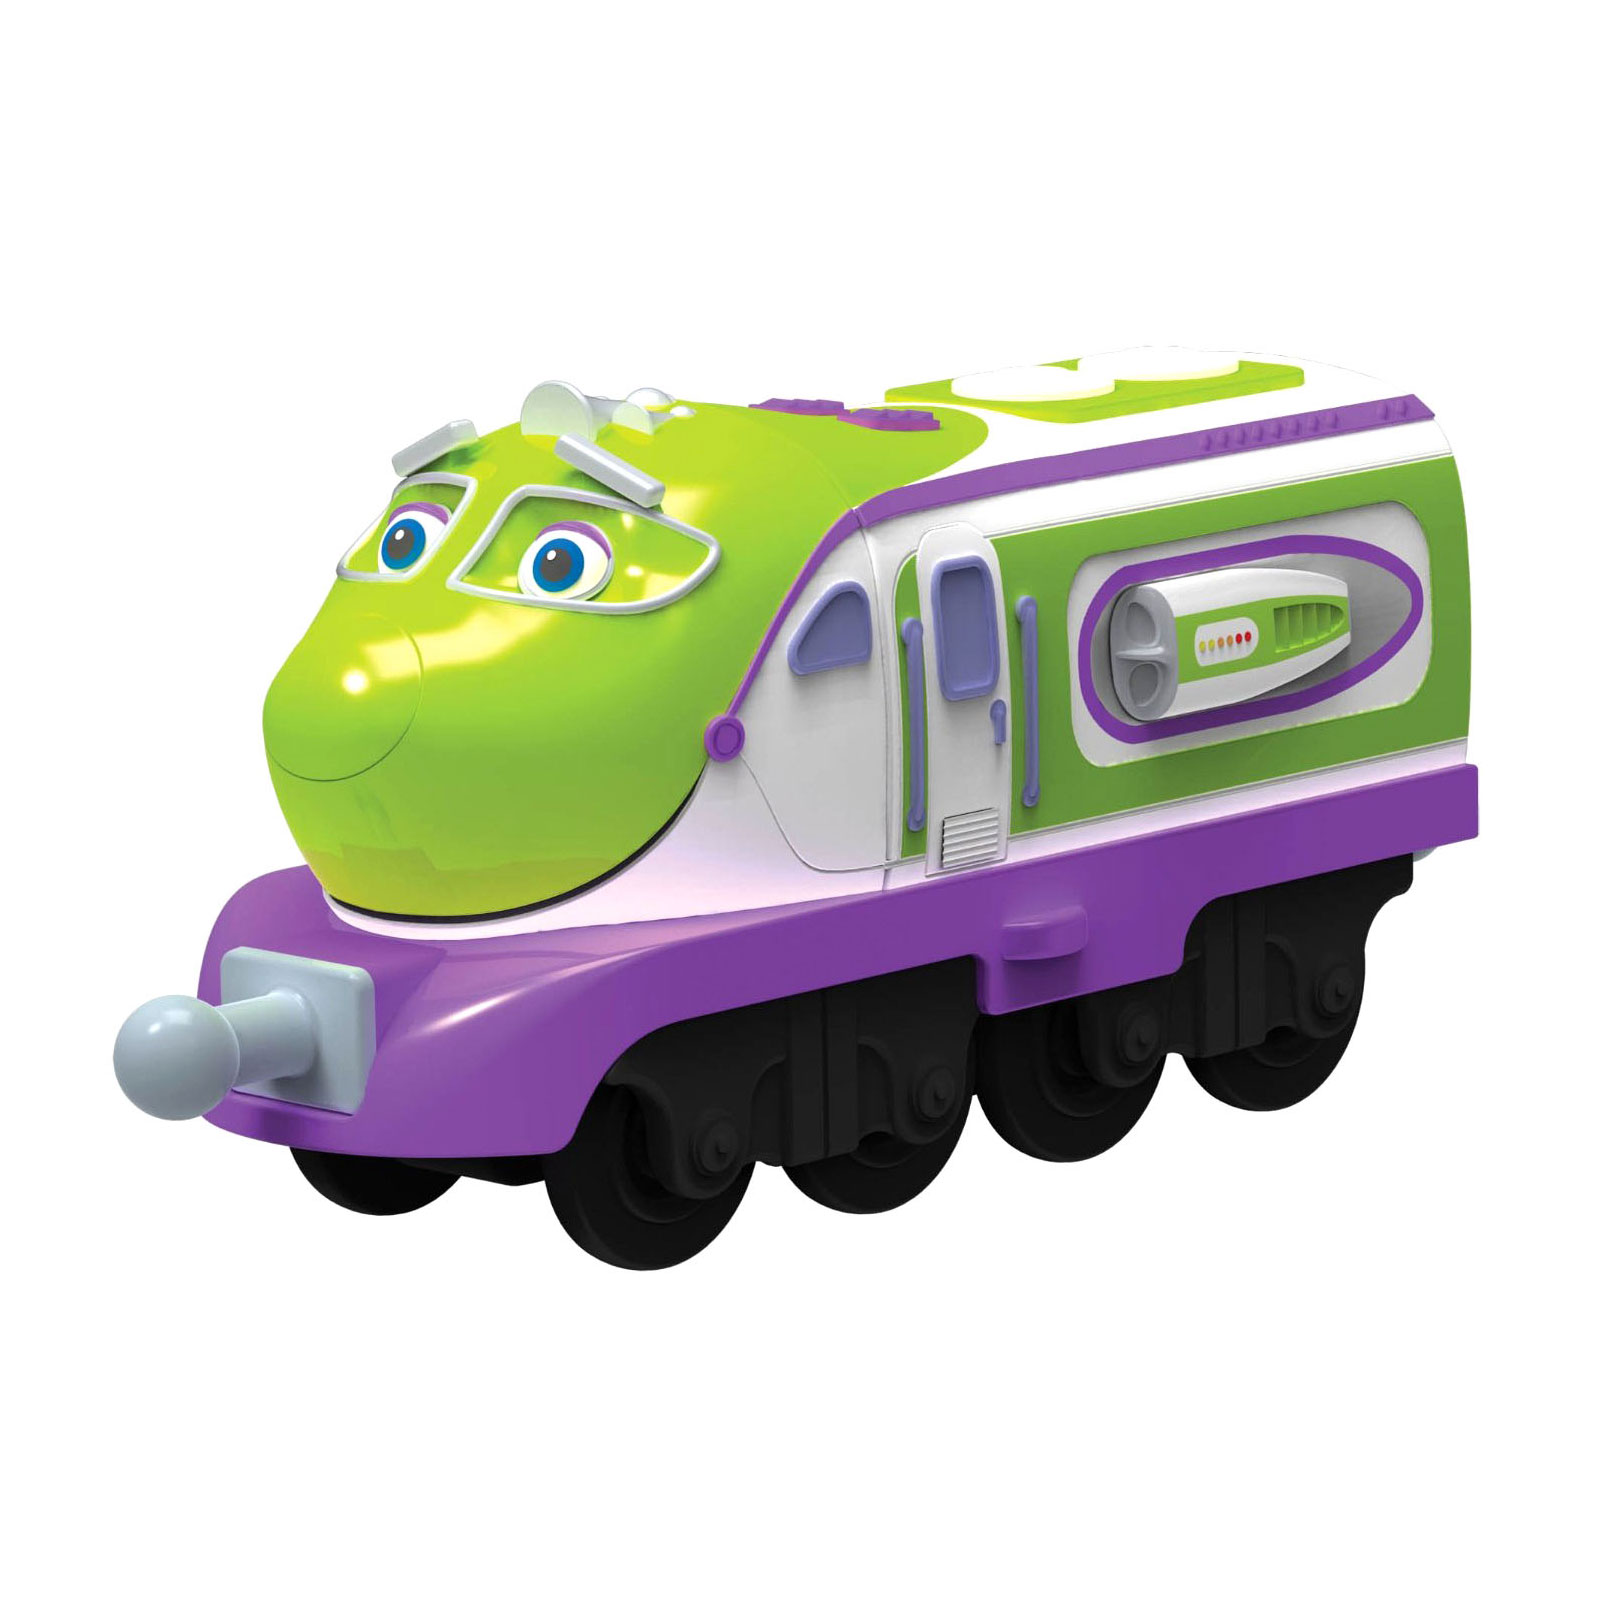 Паровозик Chuggington Коко-Чаггинсоник с 3 лет.